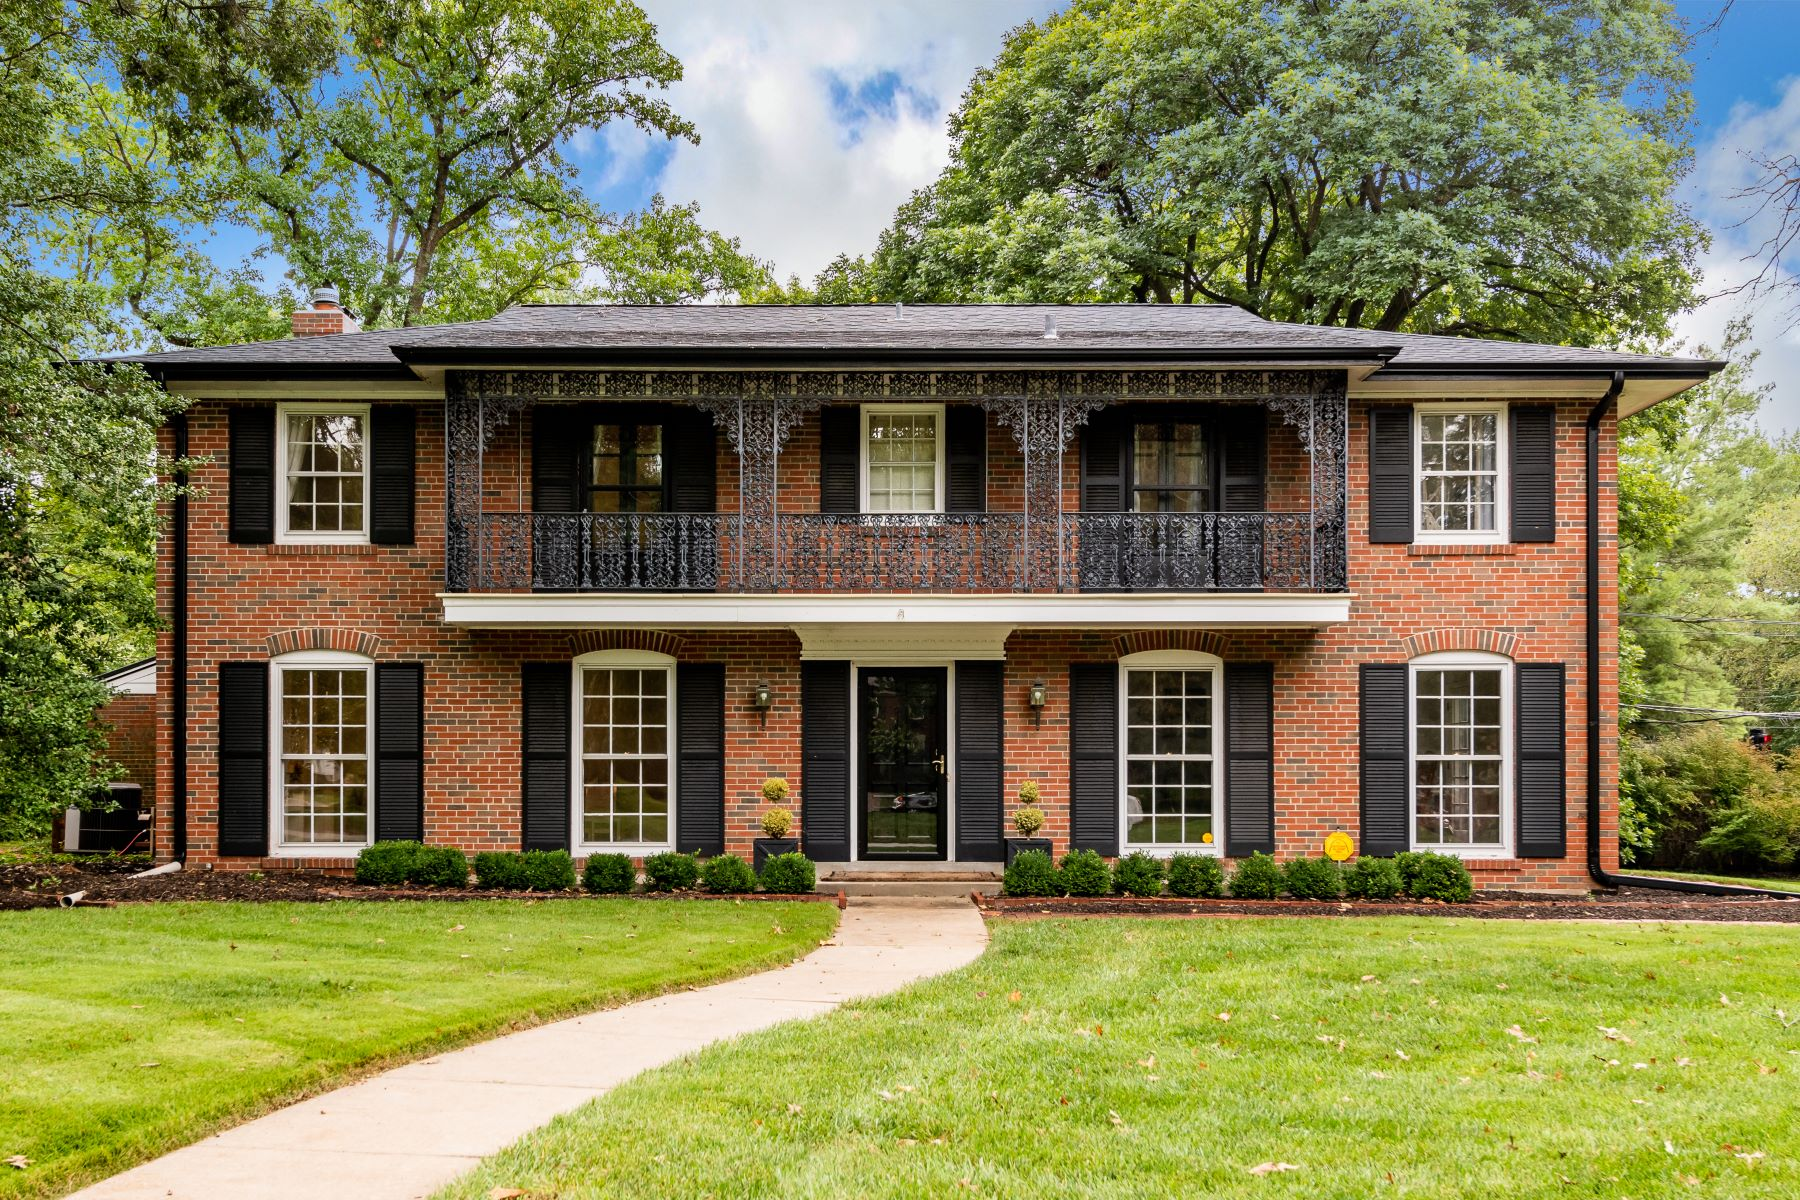 Single Family Homes for Sale at Elegant Colonial in the Heart of Ladue 1 The Prado Ladue, Missouri 63124 United States